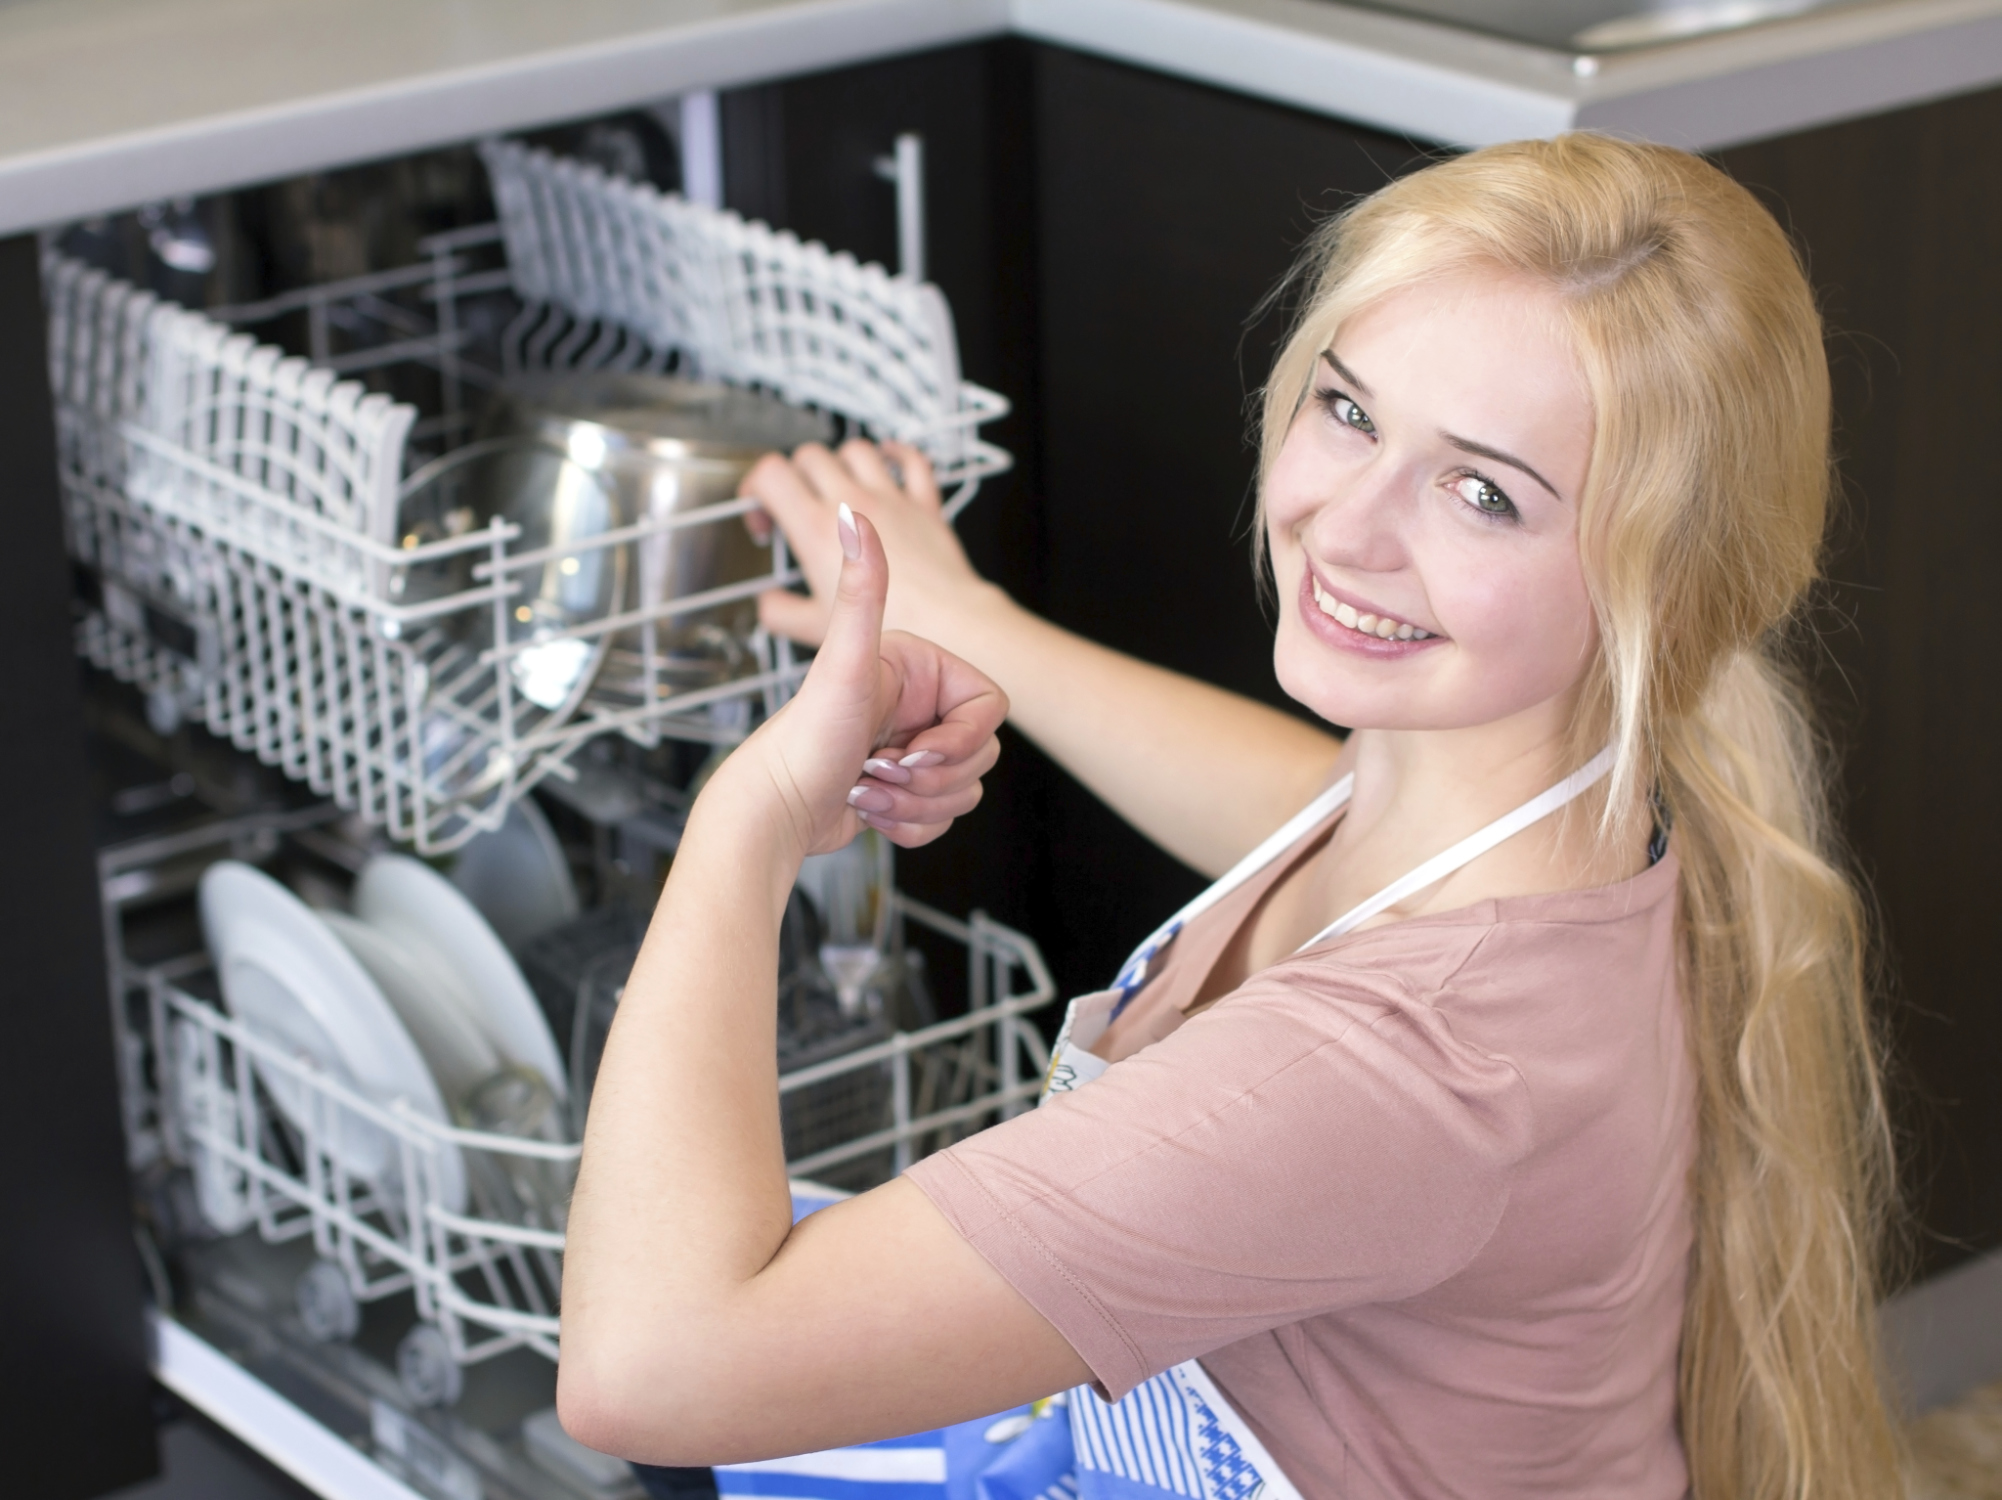 LG Dishwasher Error Codes | Home Guides | SF Gate